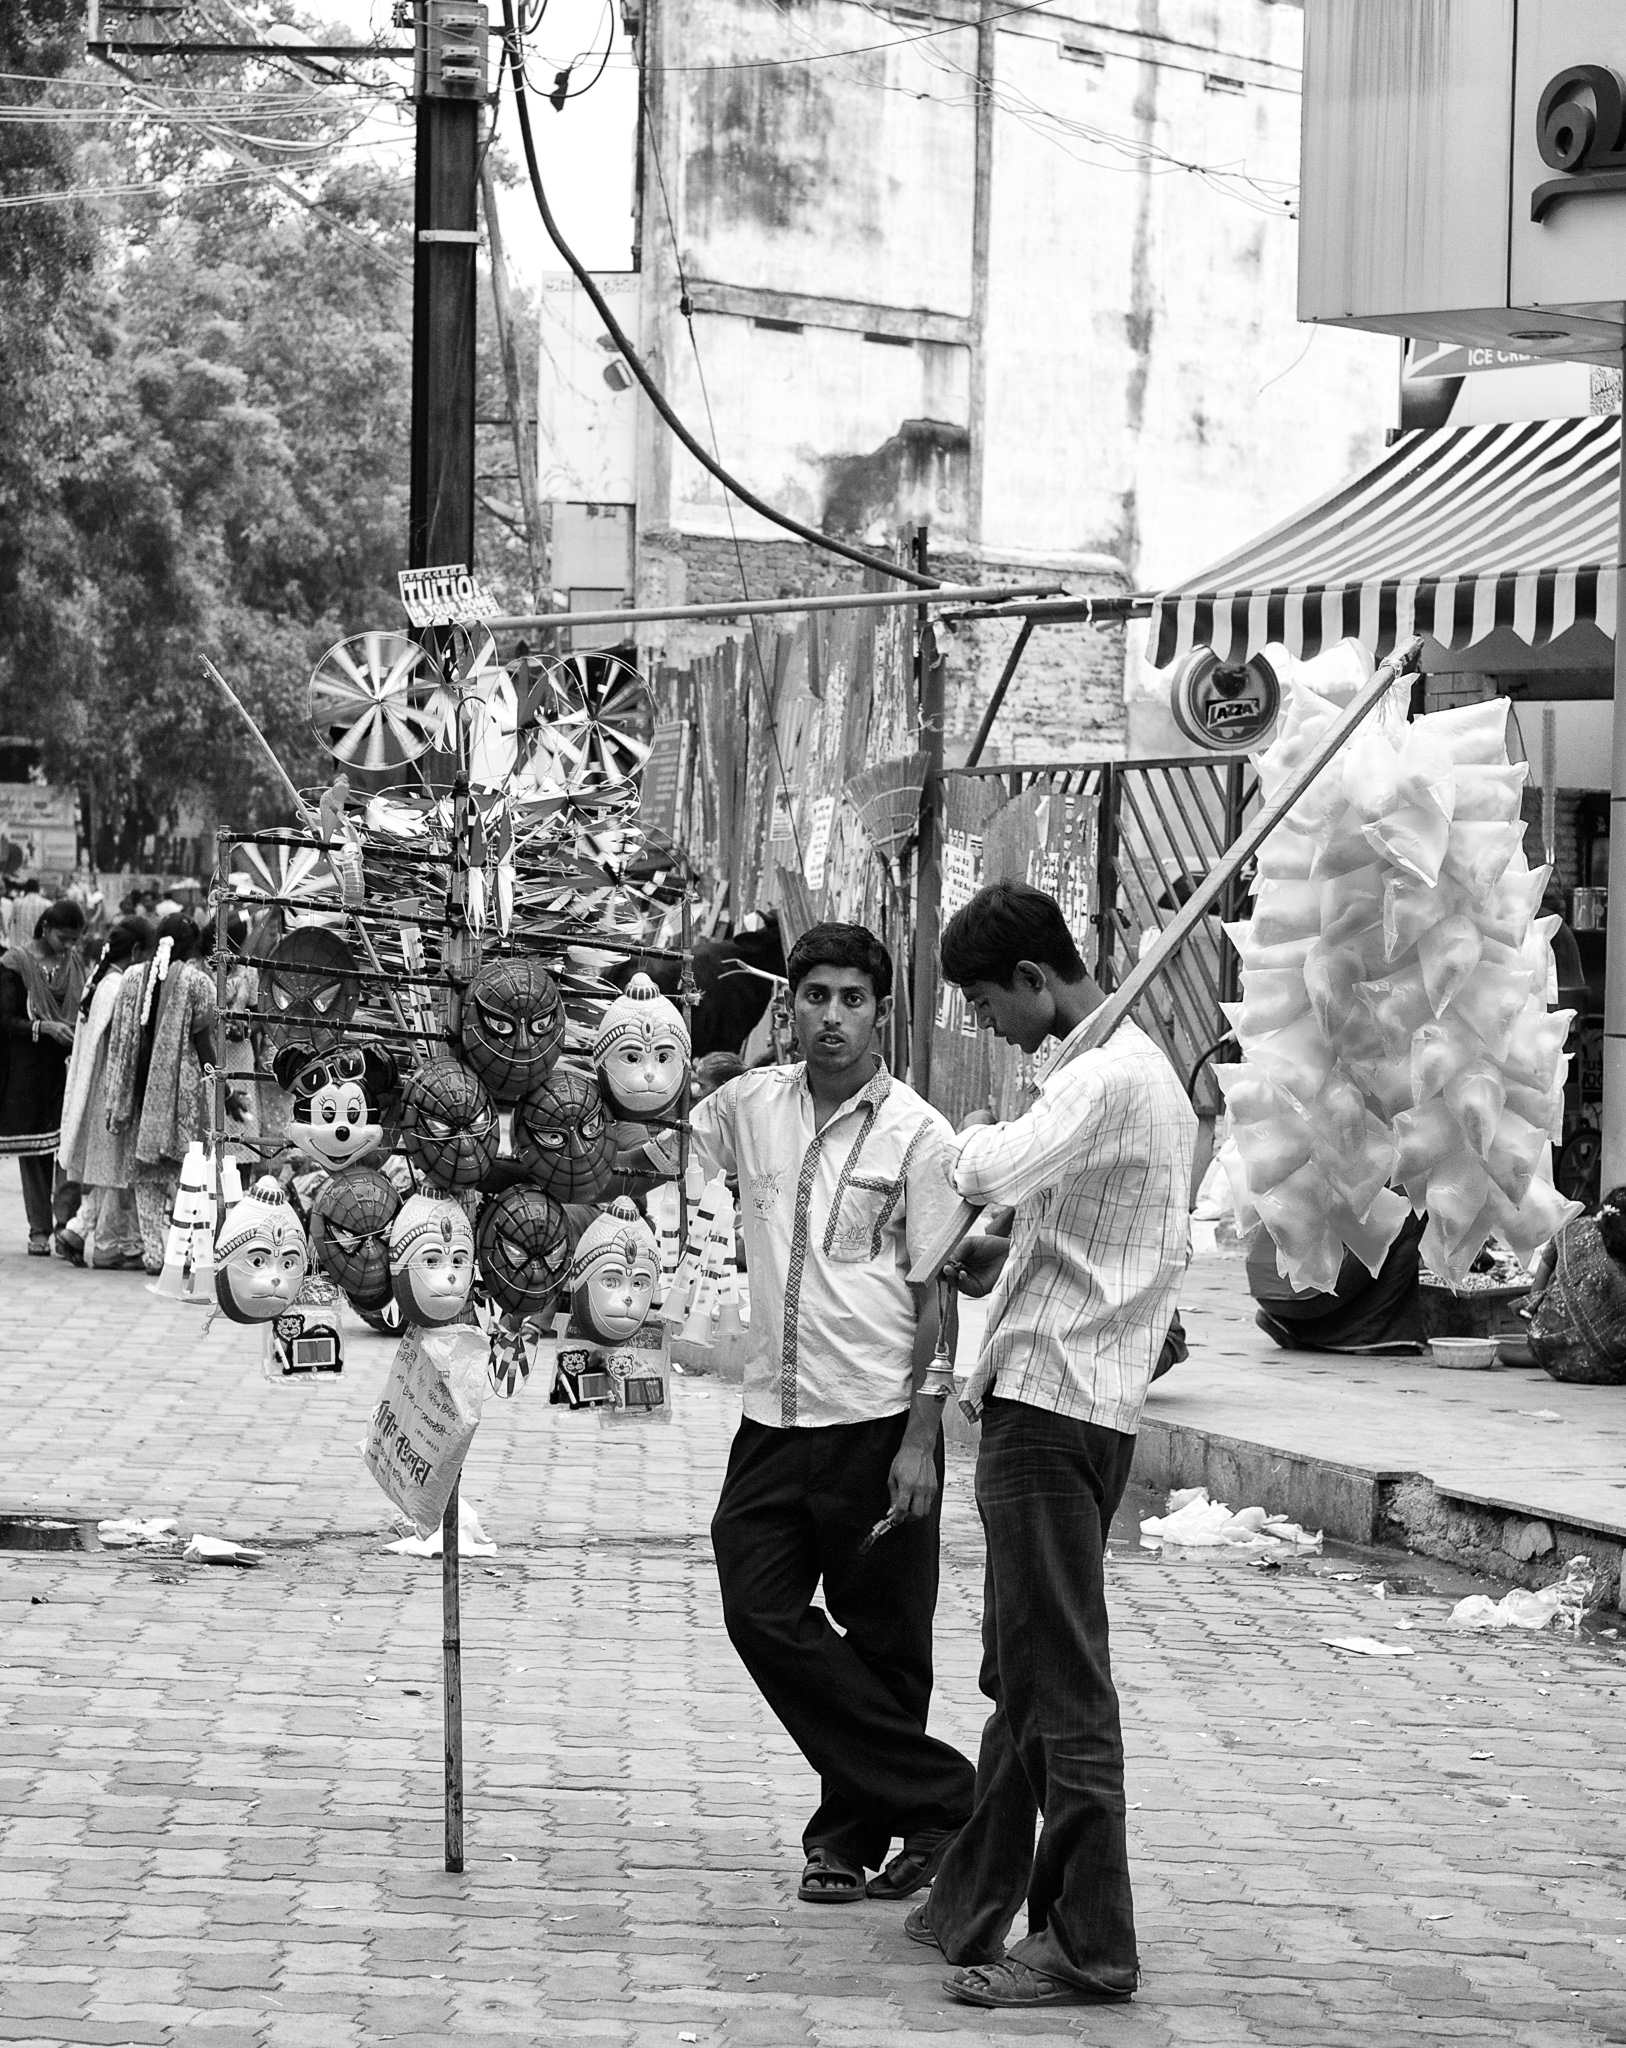 Young street vendors selling toys, masks and cotton candies. Madurai, Tamil Nadu, India